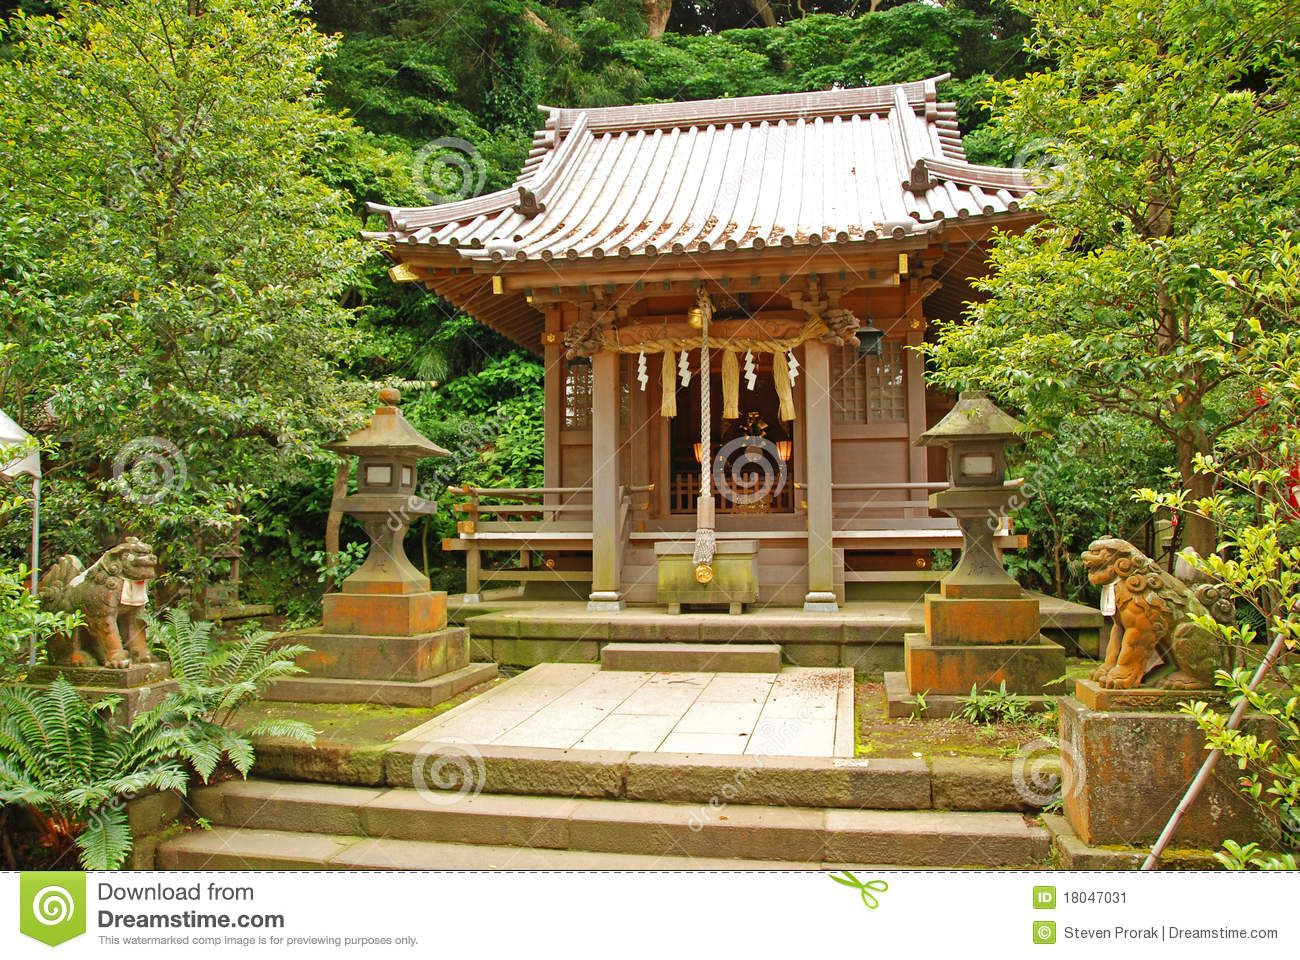 Ancient japanese gardens - Visit Japan To Experience A Land Where Cutting Edge Modernity Coexists With Ancient Tradition